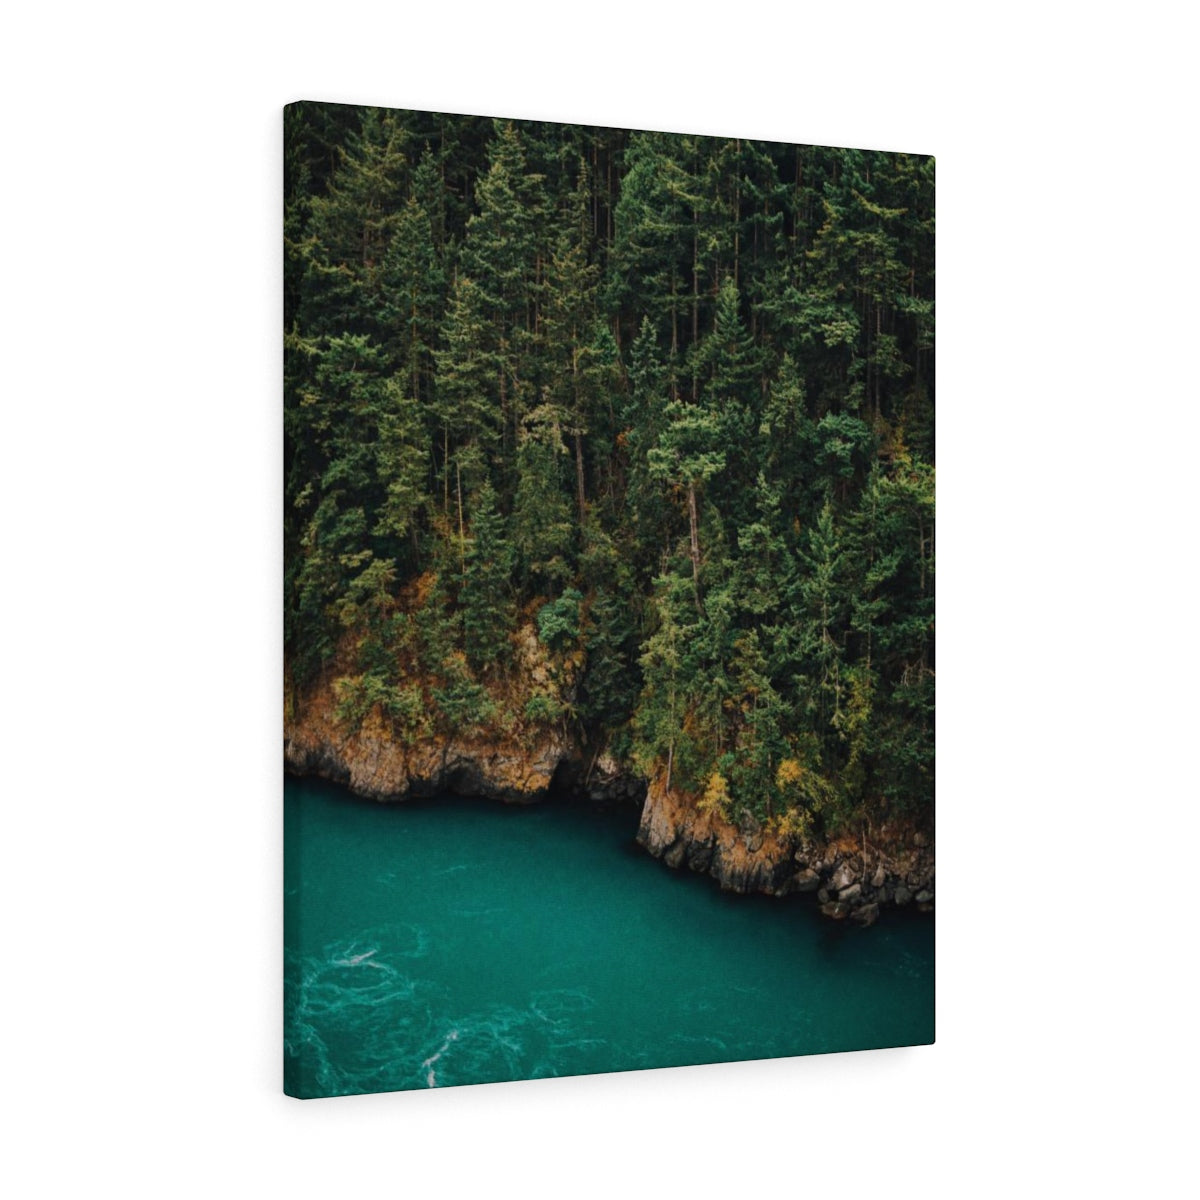 Forested River - Canvas